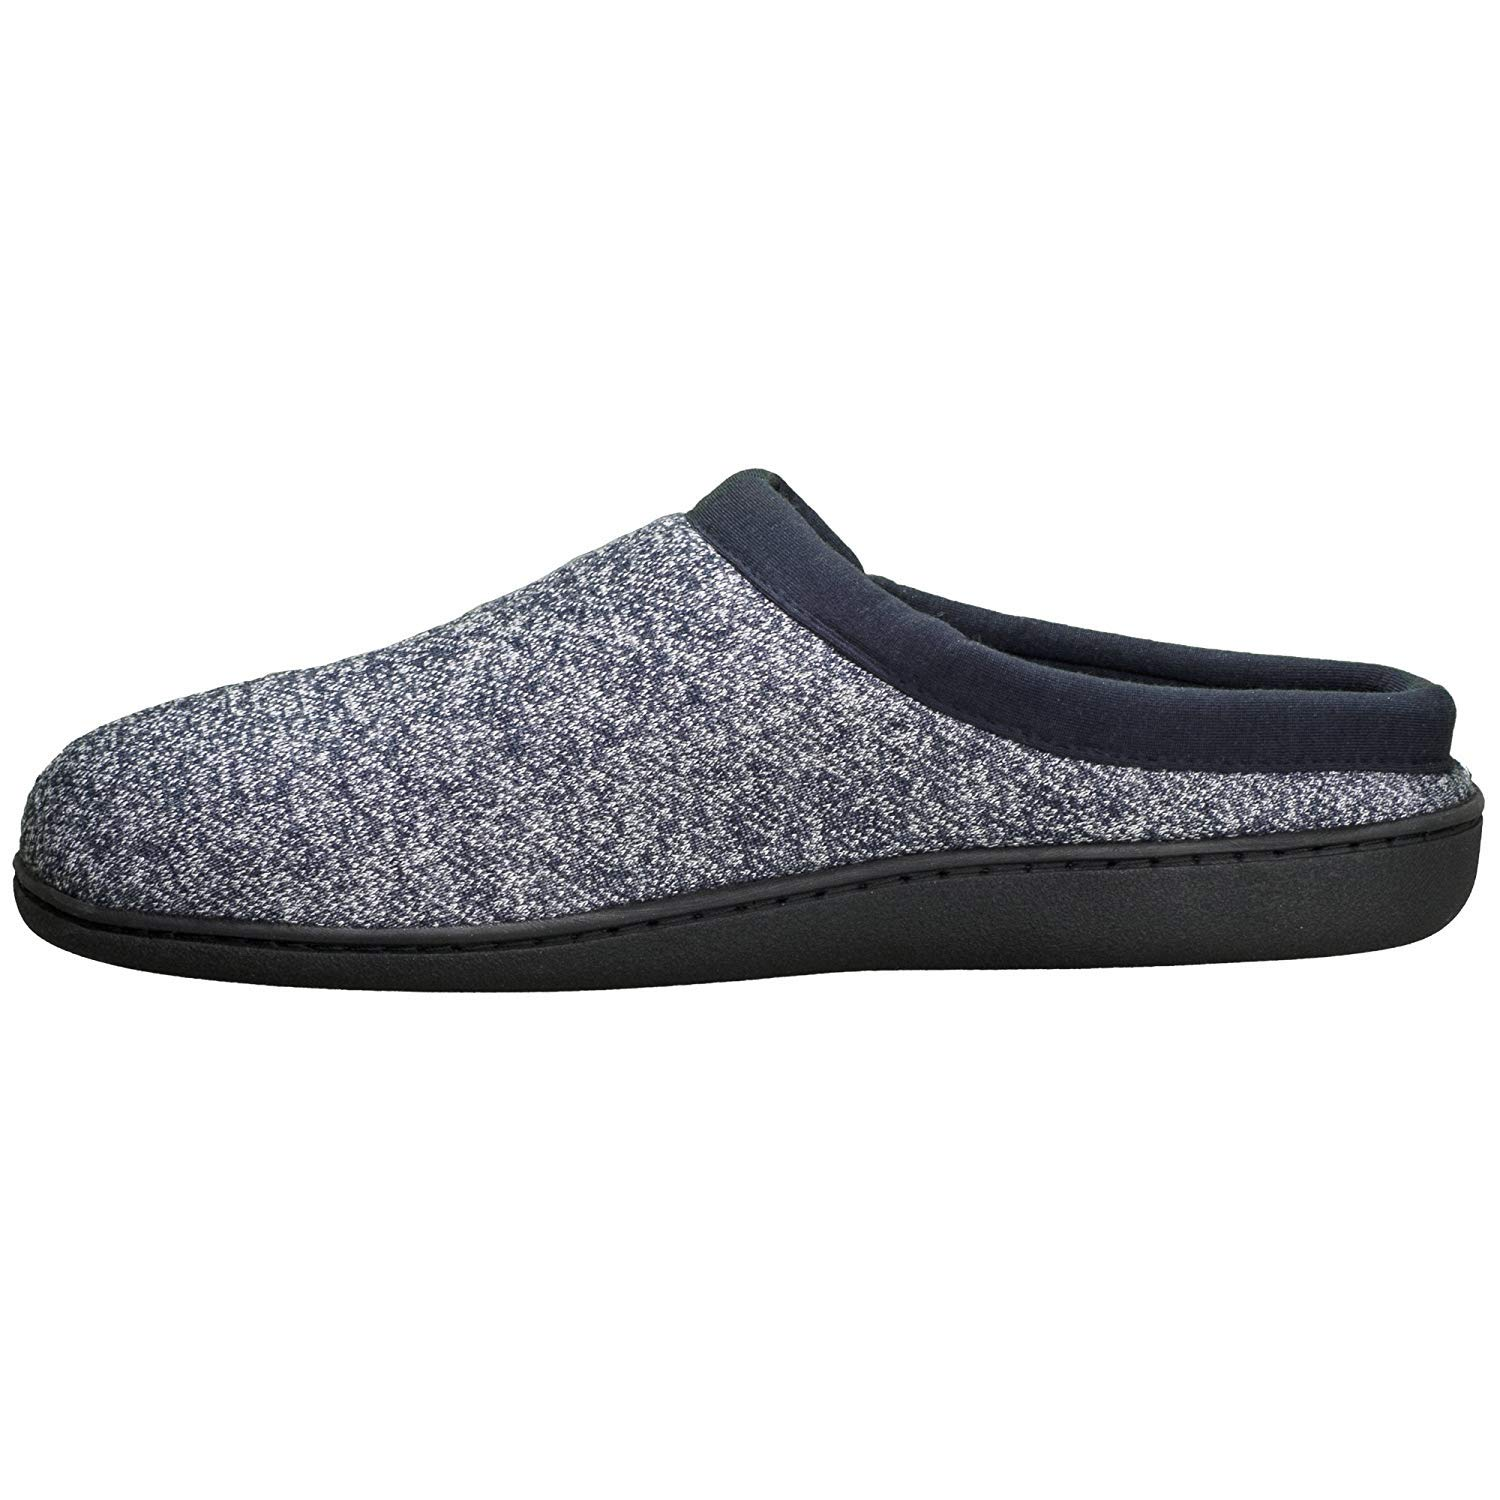 Hanes Clog (Mens Navy Small (6.5-7.5) Navy (Mens Clog) b33262